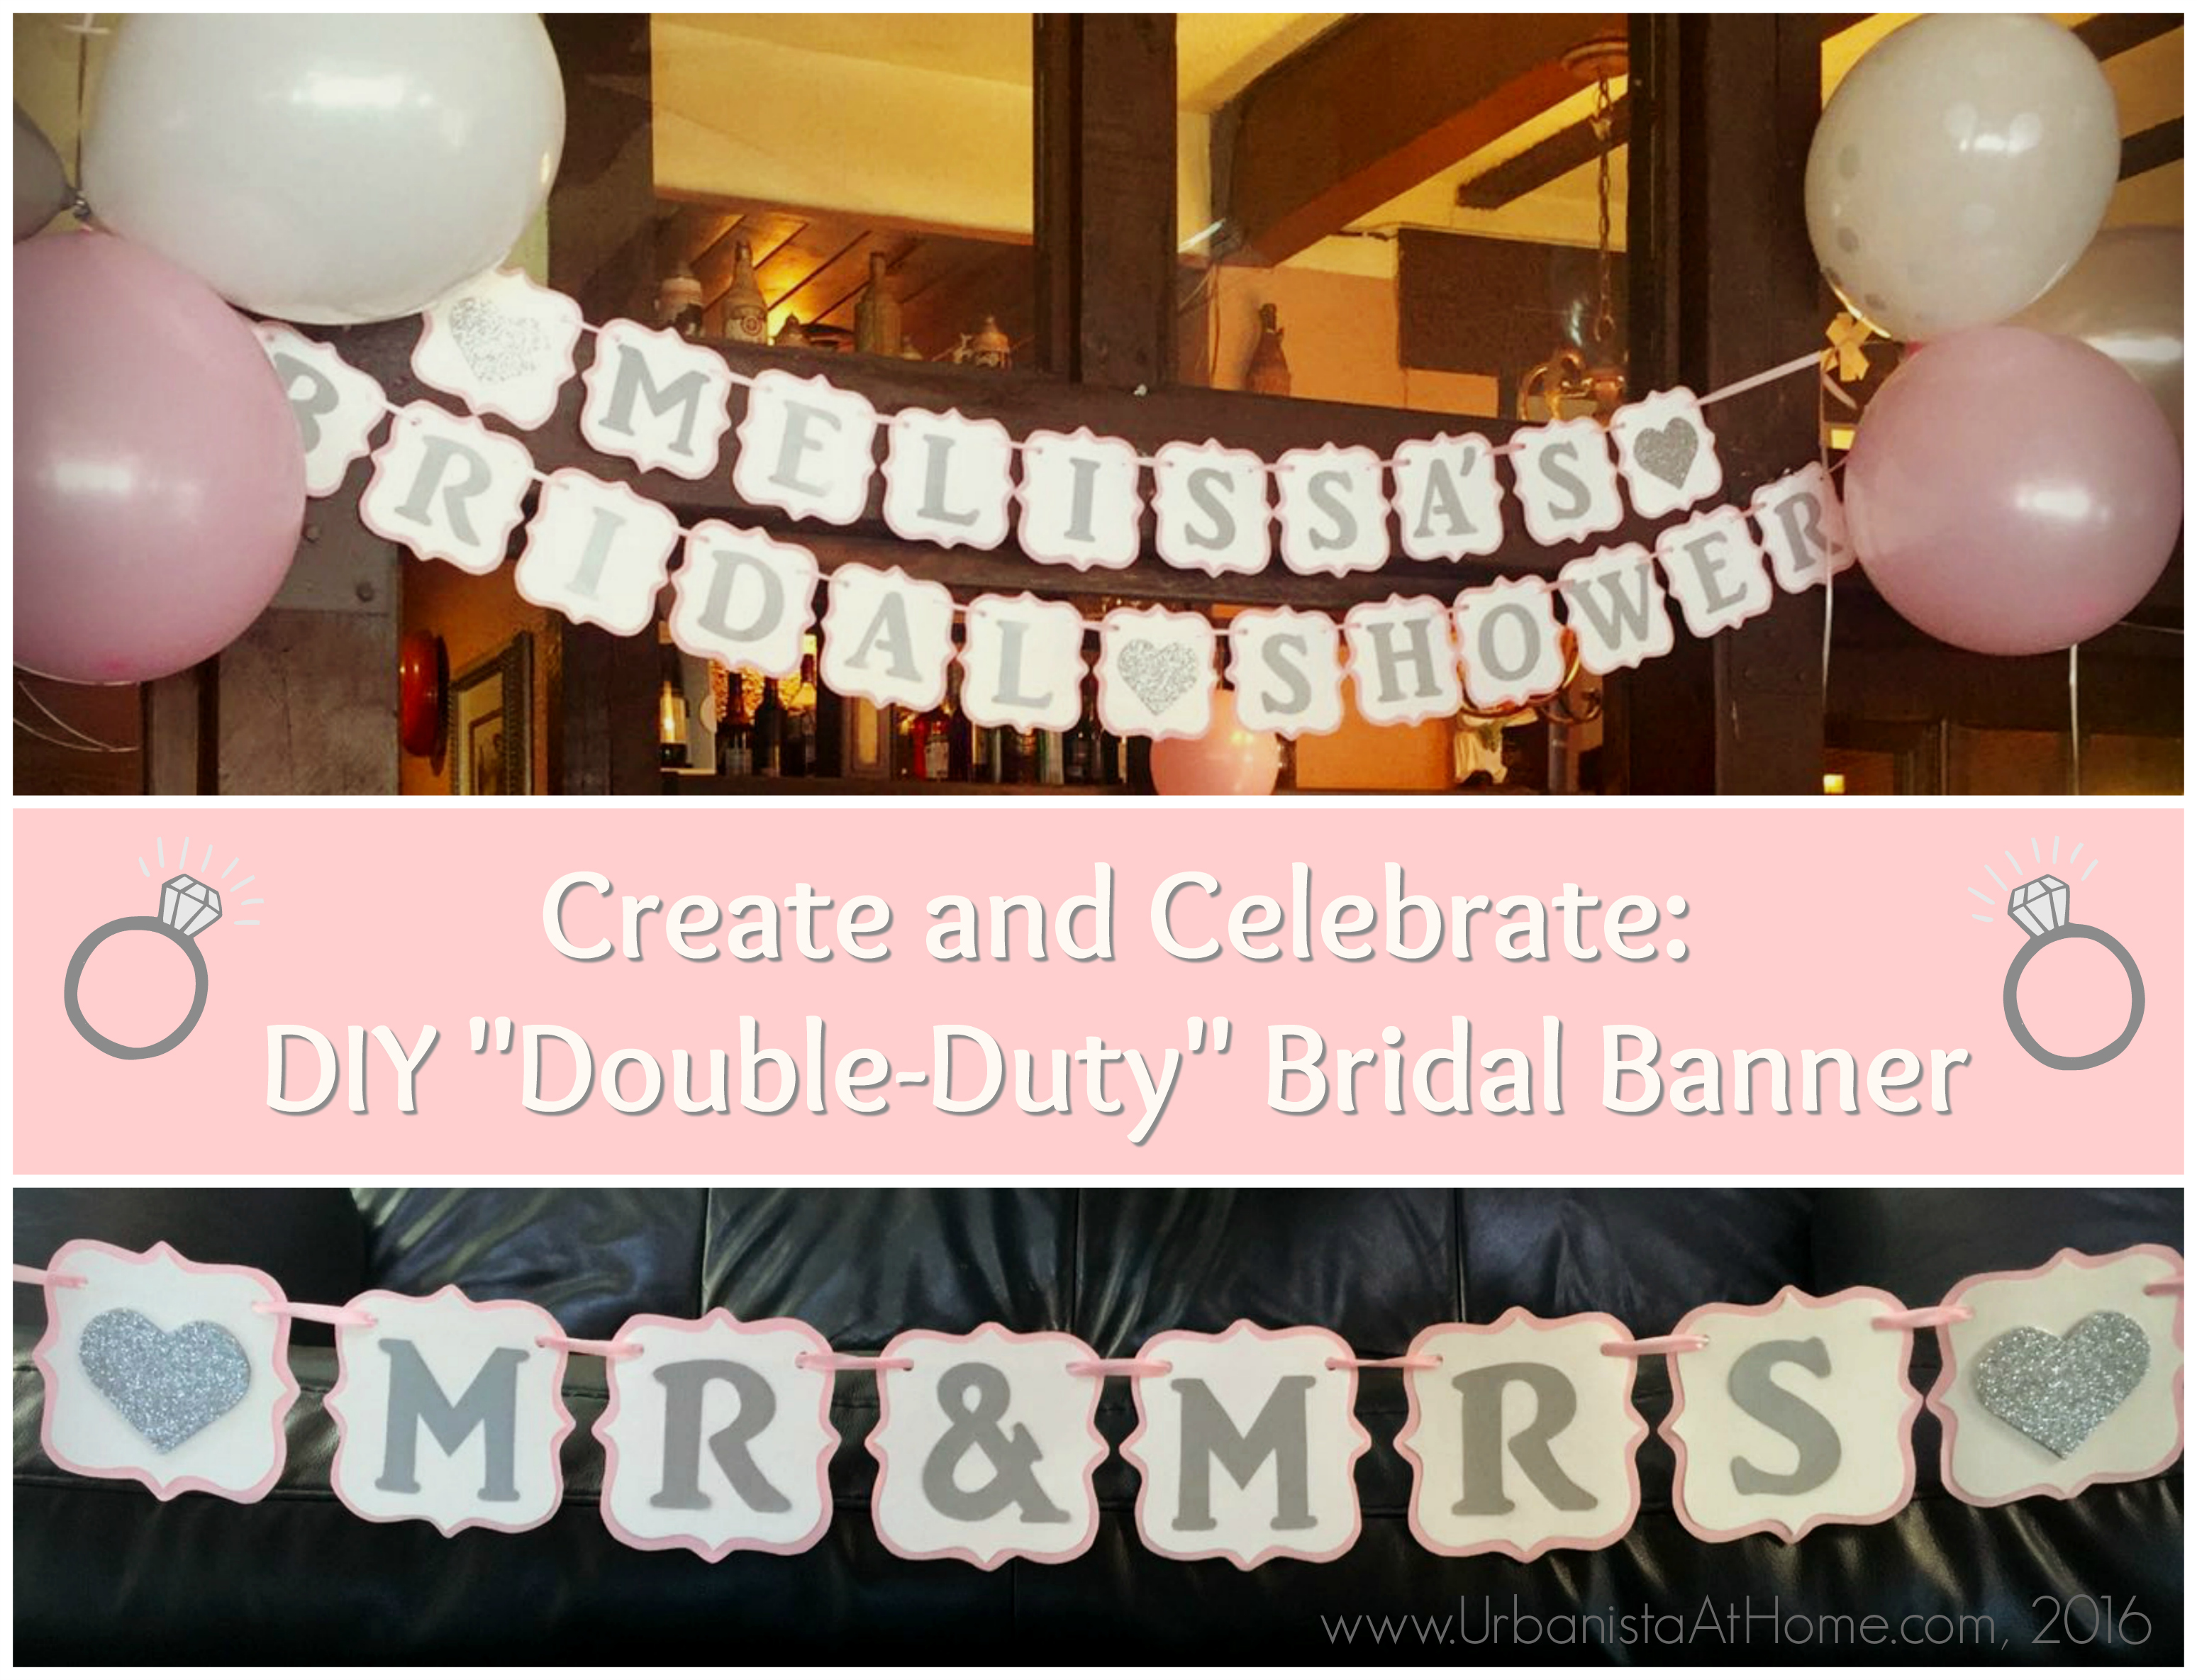 urbanistaathome-com-create-and-celebrate-diy-double-duty-bridal-banner